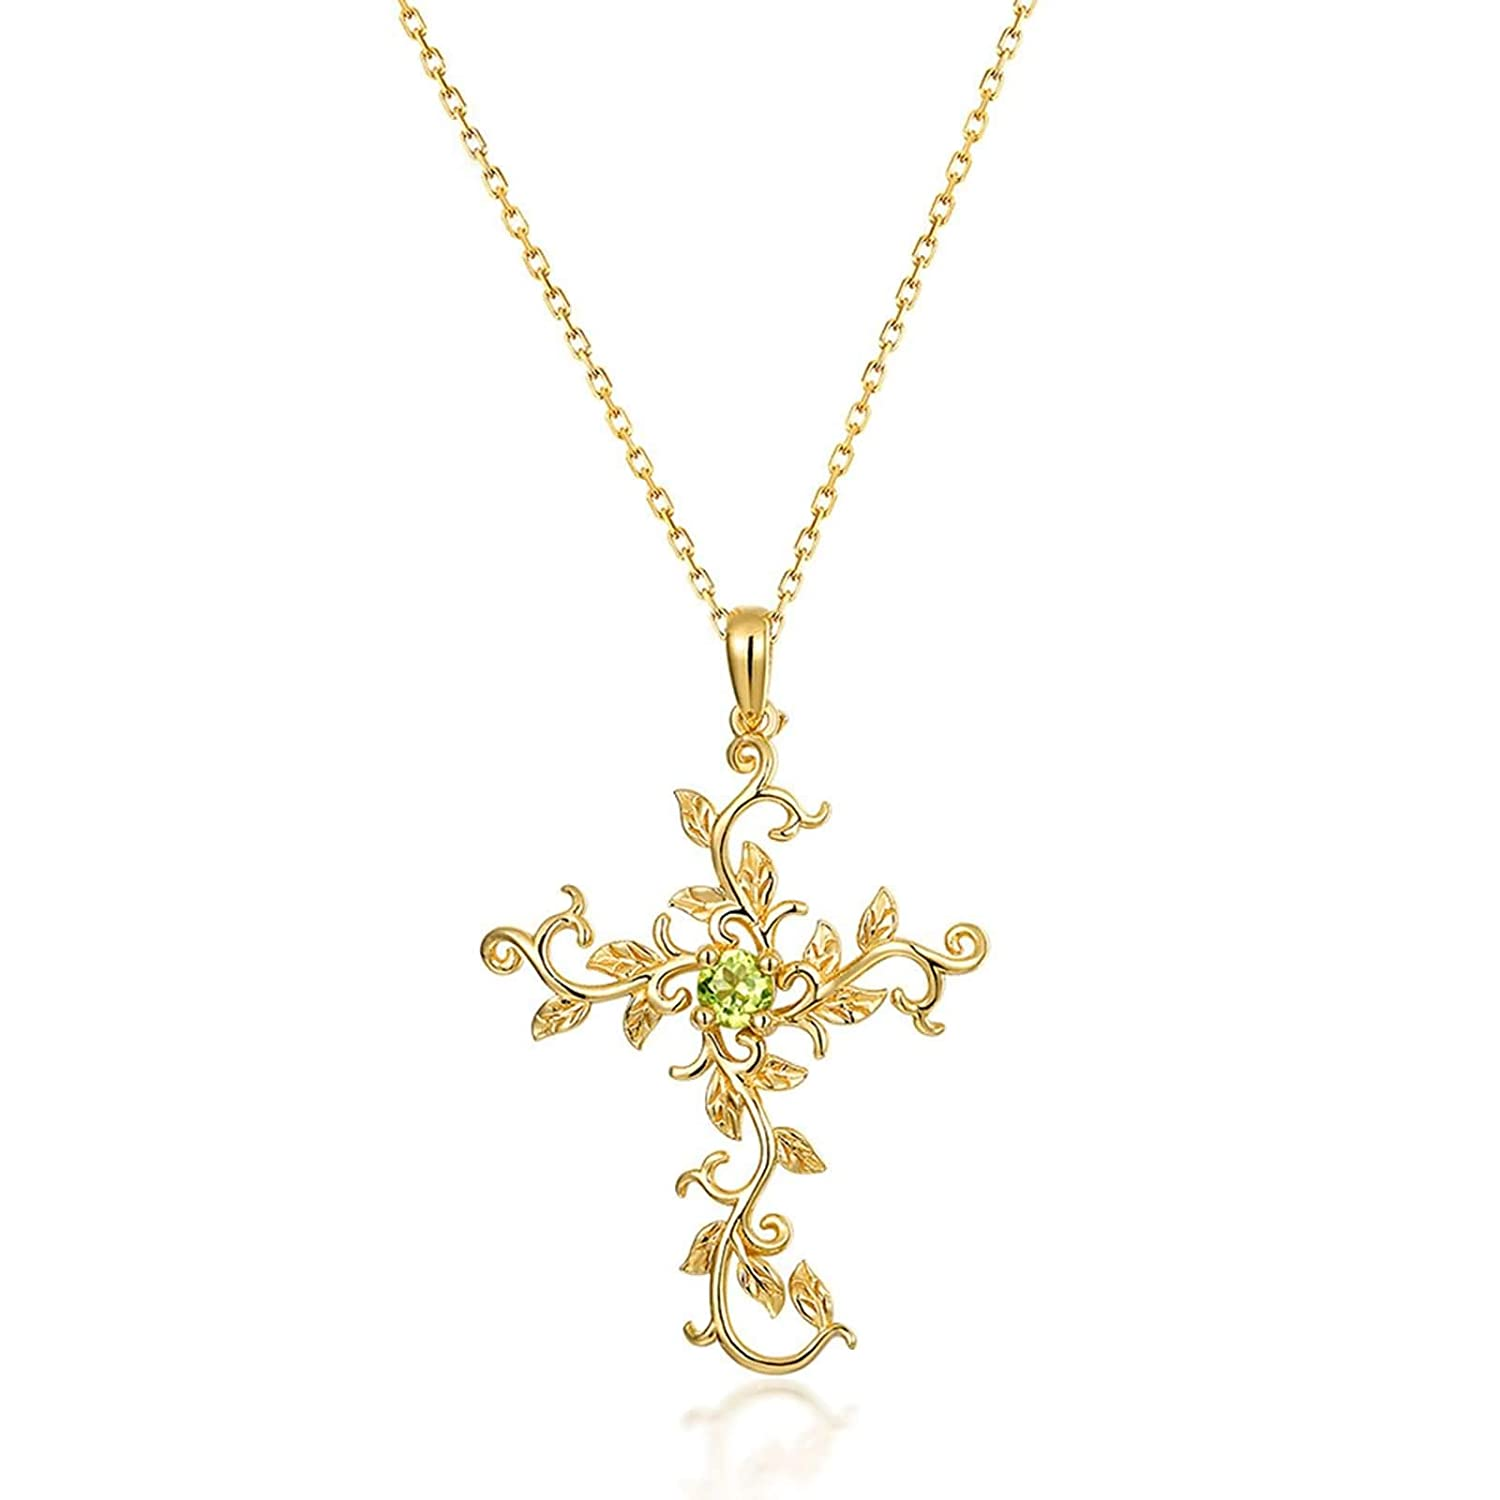 Epinki 925 Sterling Silver Necklace for Women Girls Gold Peridot Clavicular Chain Vines Flower Pendant Necklace